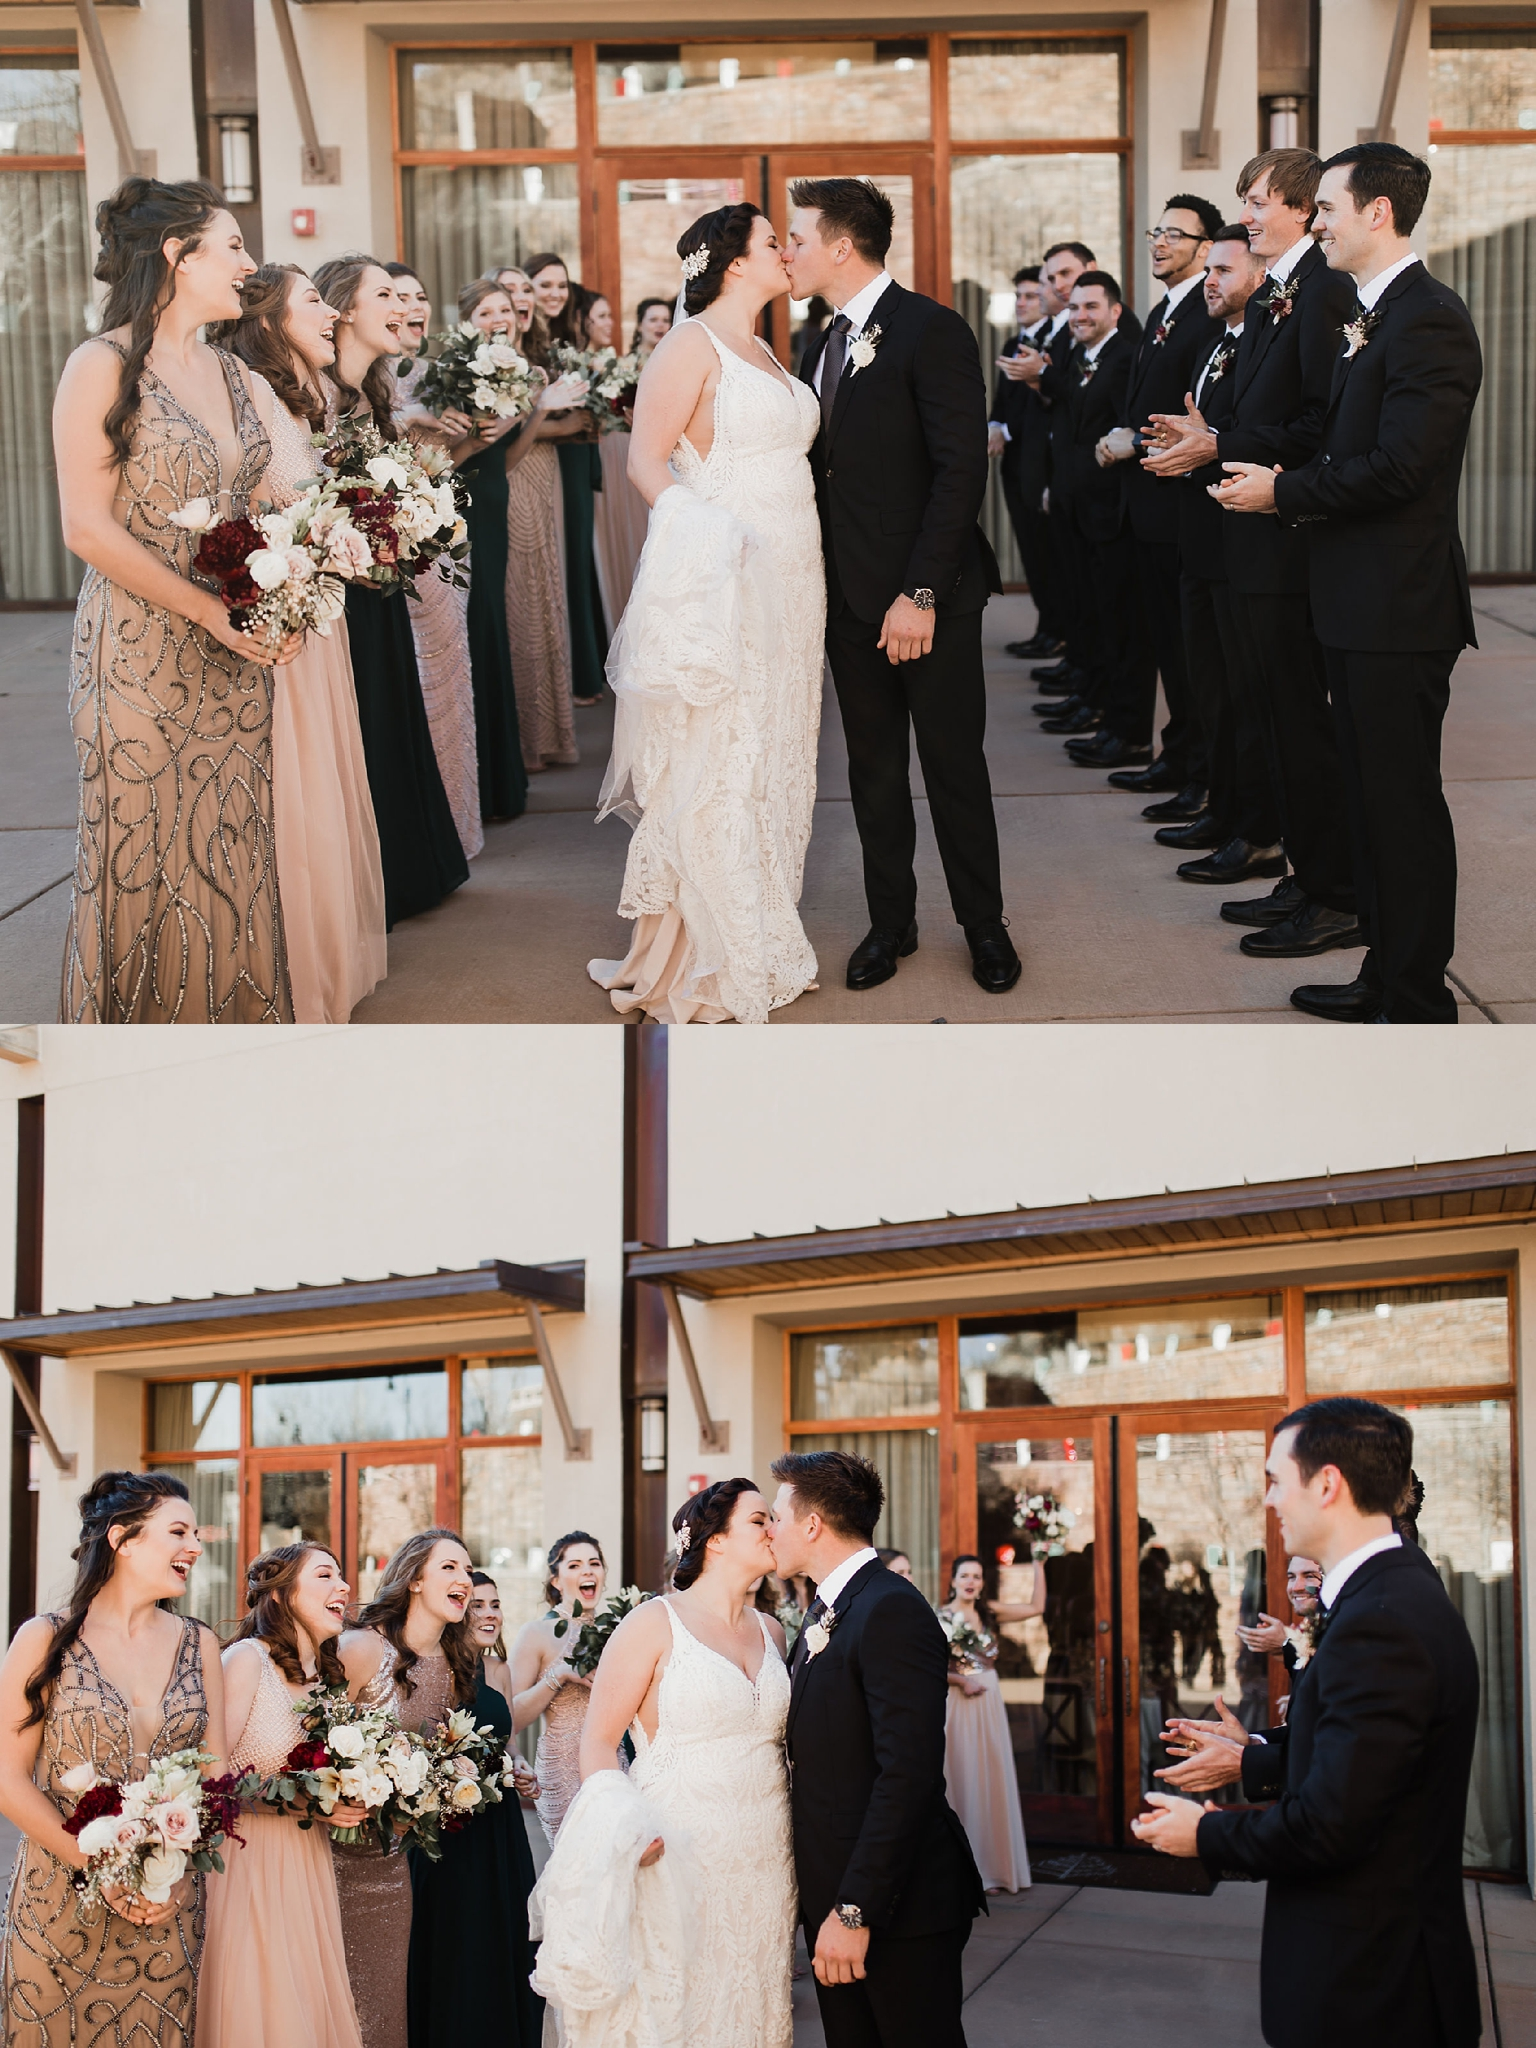 Alicia+lucia+photography+-+albuquerque+wedding+photographer+-+santa+fe+wedding+photography+-+new+mexico+wedding+photographer+-+new+mexico+wedding+-+santa+fe+wedding+-+four+seasons+wedding+-+winter+wedding_0076.jpg